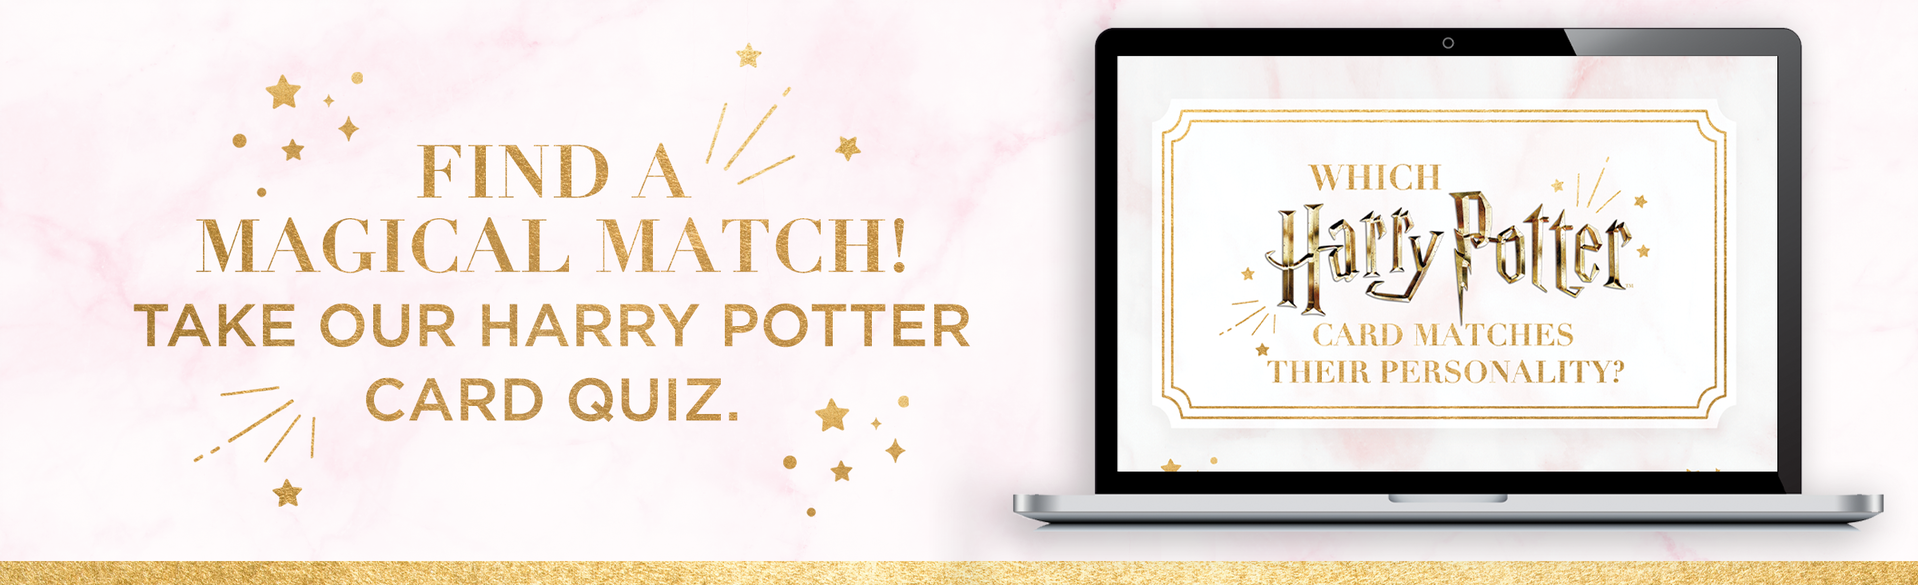 Laptop with Harry Potter Card Quiz on it